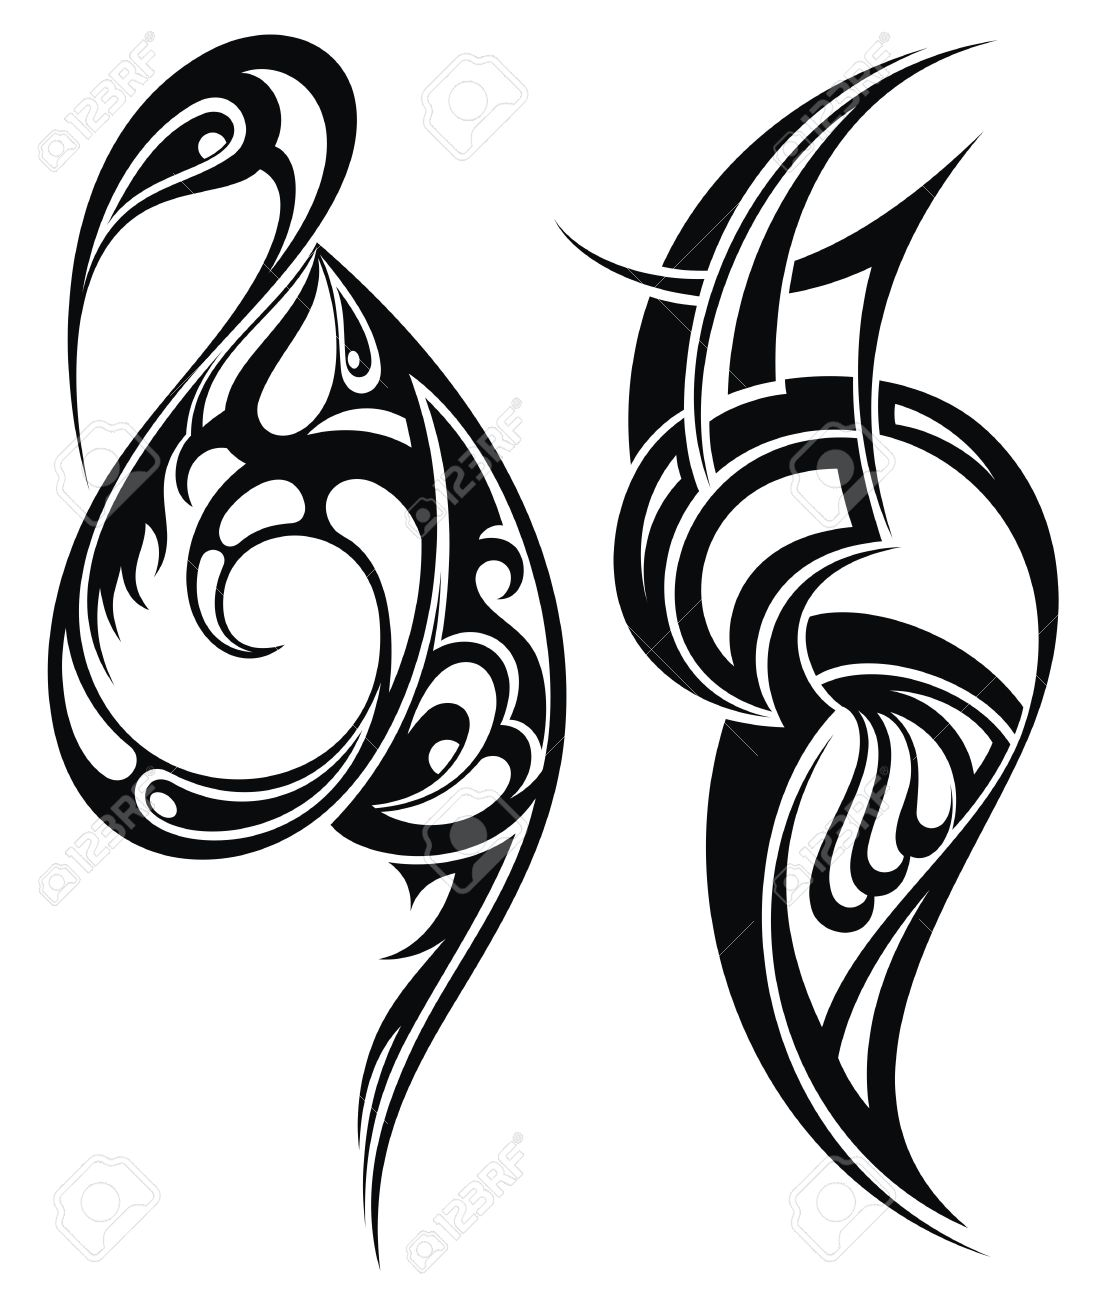 tattoo design royalty free cliparts vectors and stock illustration rh 123rf com vector tattoo designs vector tattoo designs